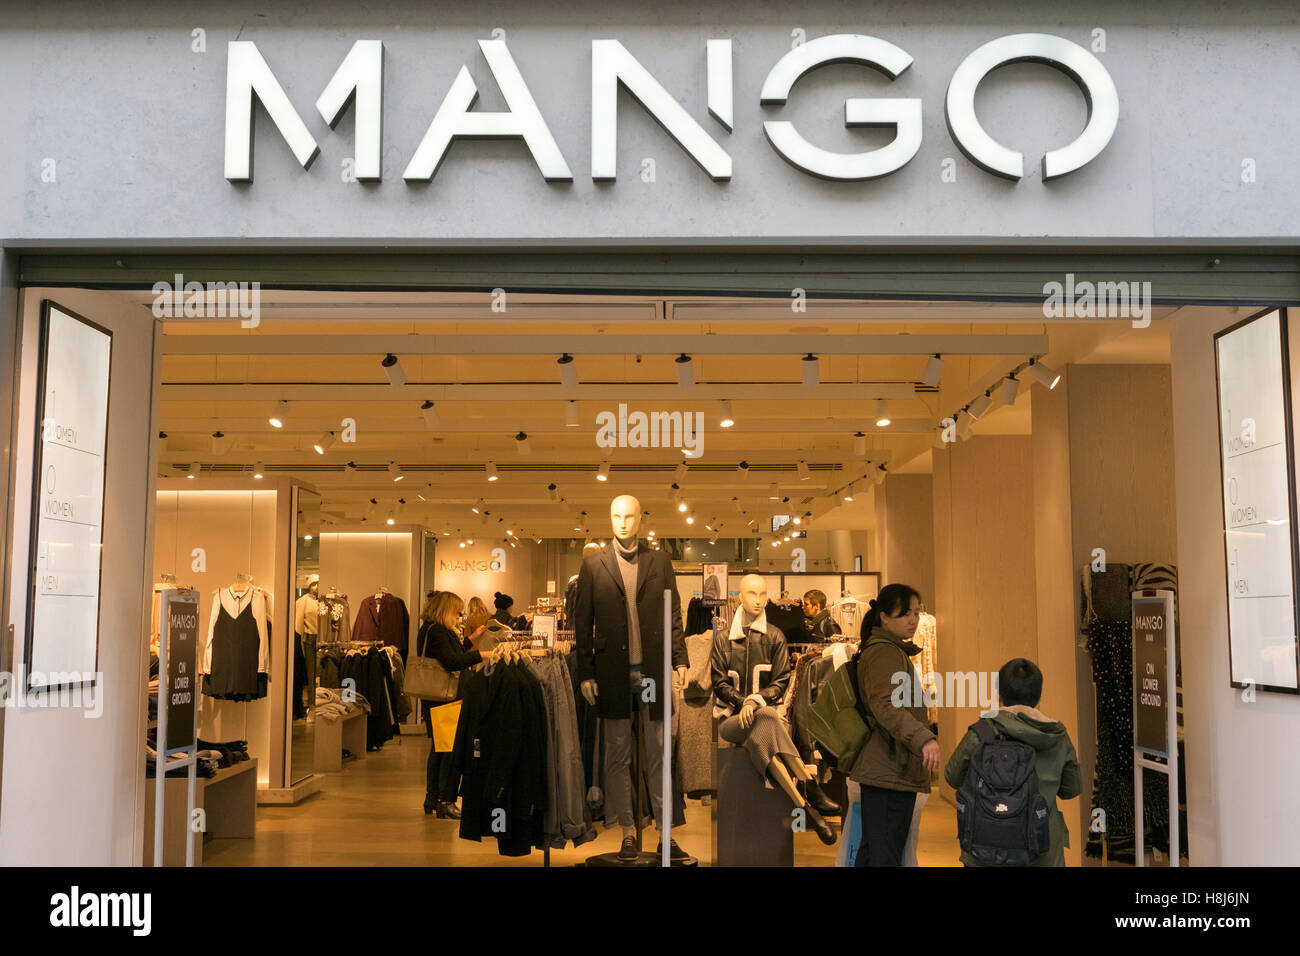 'Mango' store in Manchester city centre, UK. - Stock Image